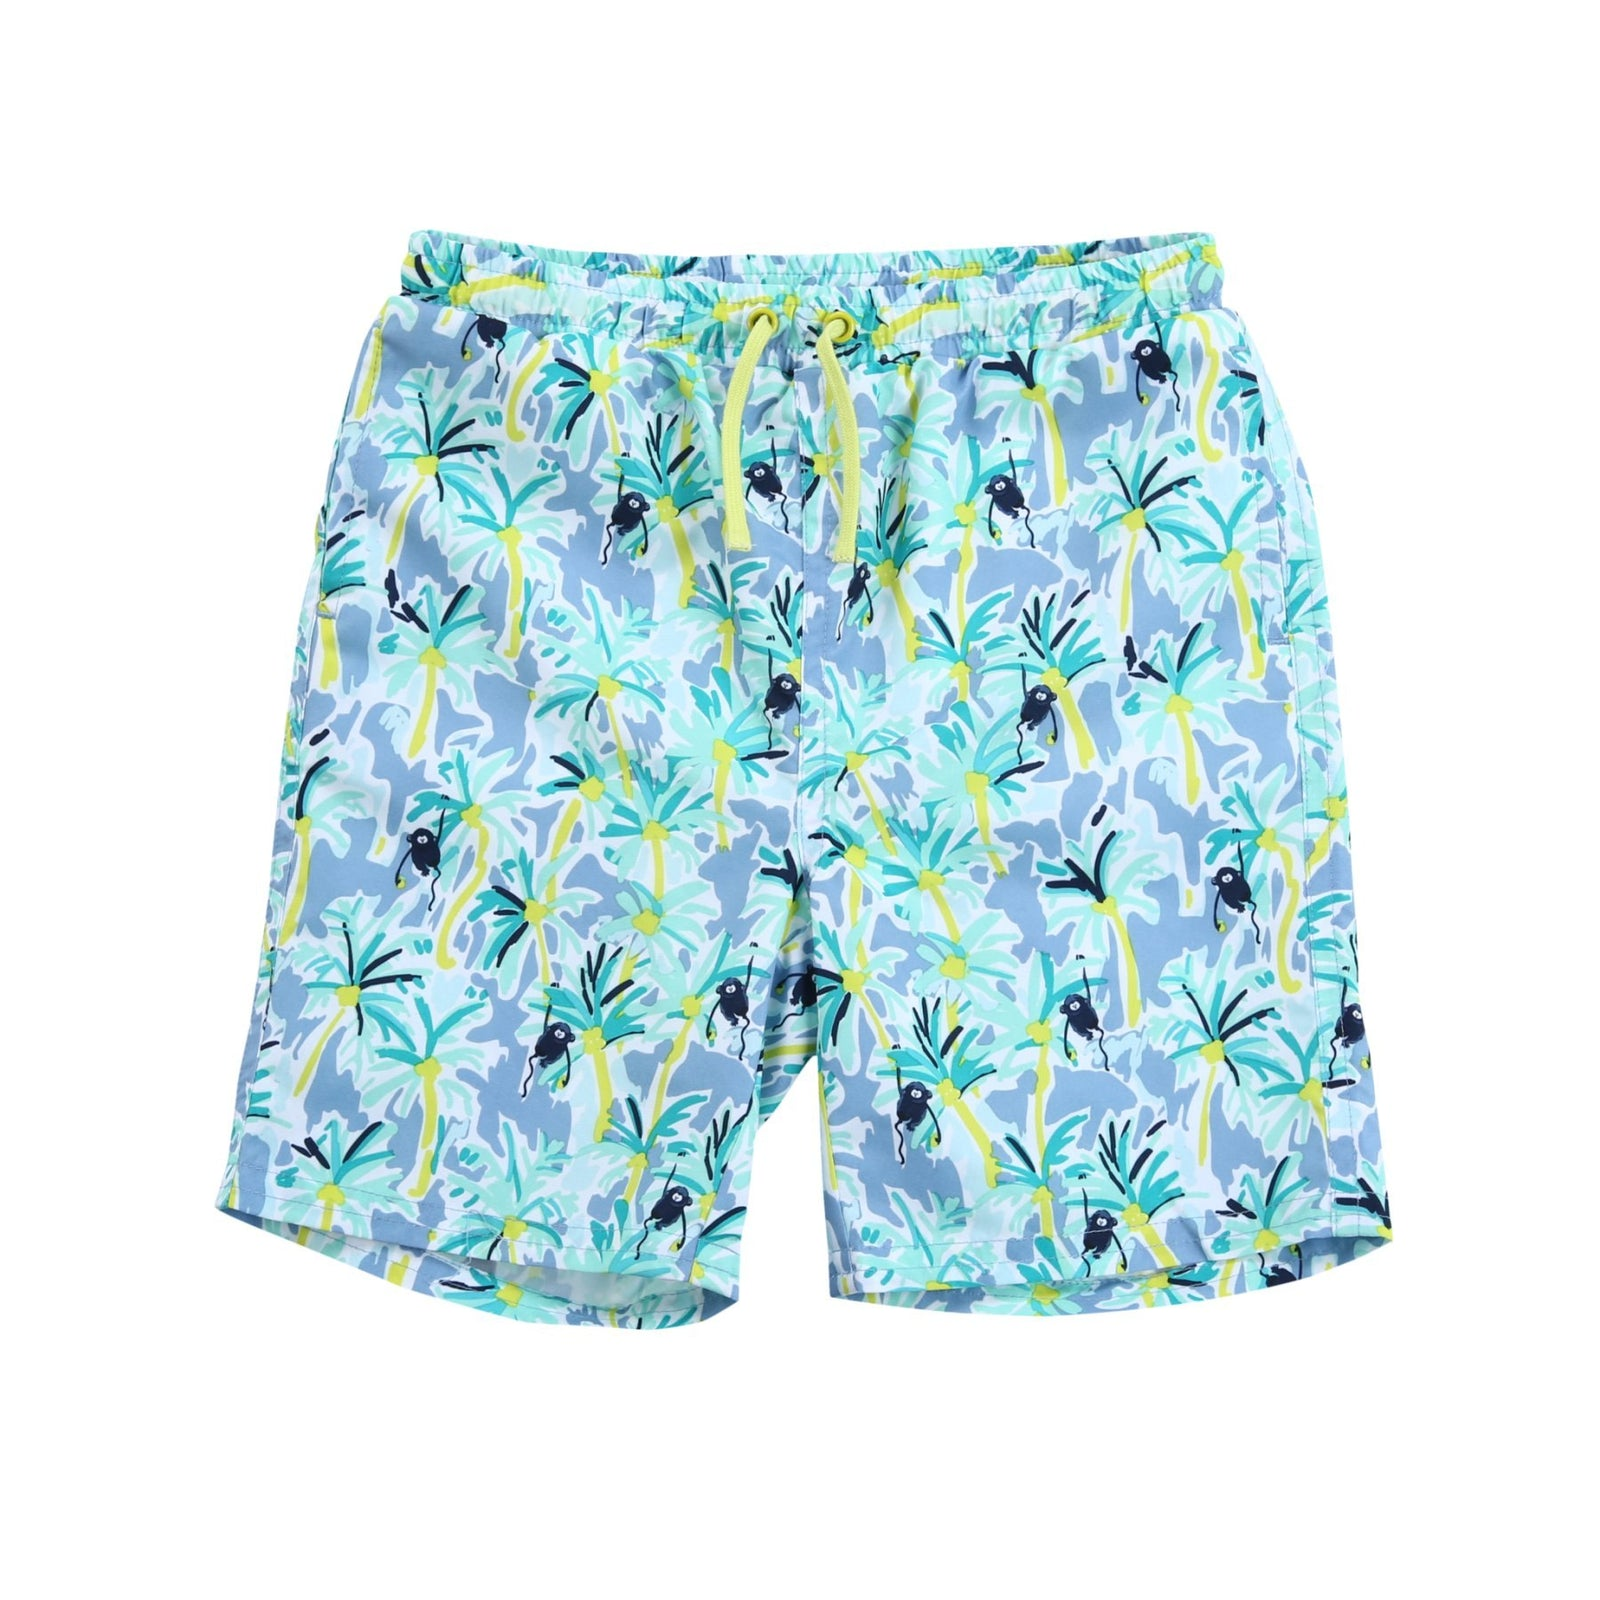 80548f35db9 Boys Tropical Print Drawstring Swim Trunk